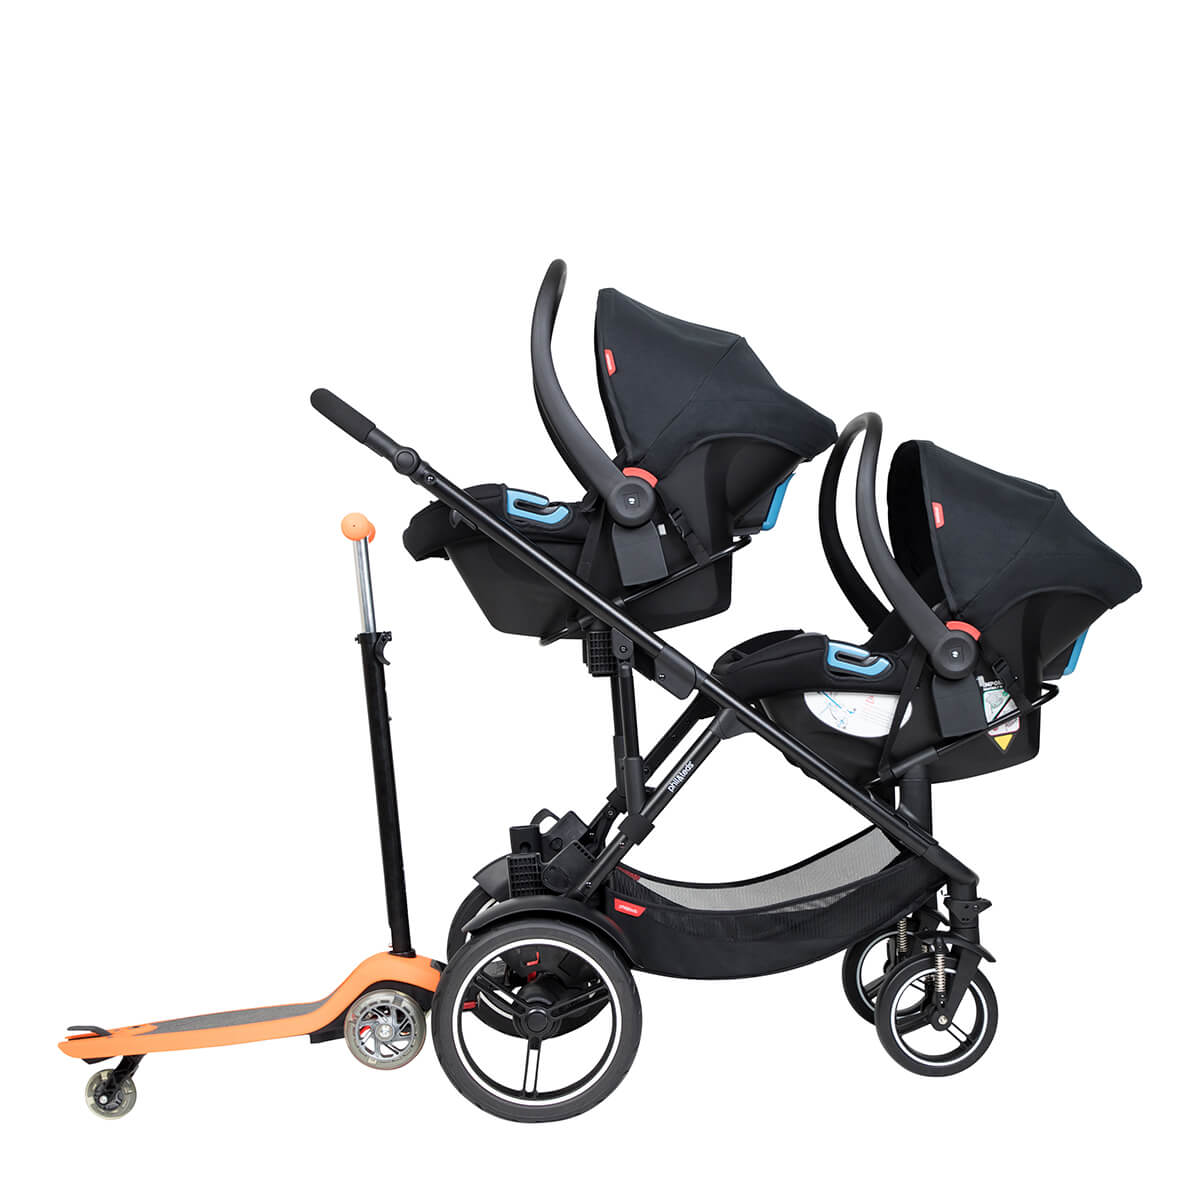 https://cdn.accentuate.io/4390319587424/19440482418872/philteds-voyager-buggy-with-double-travel-systems-and-freerider-stroller-board-in-the-rear-v1626488674307.jpg?1200x1200